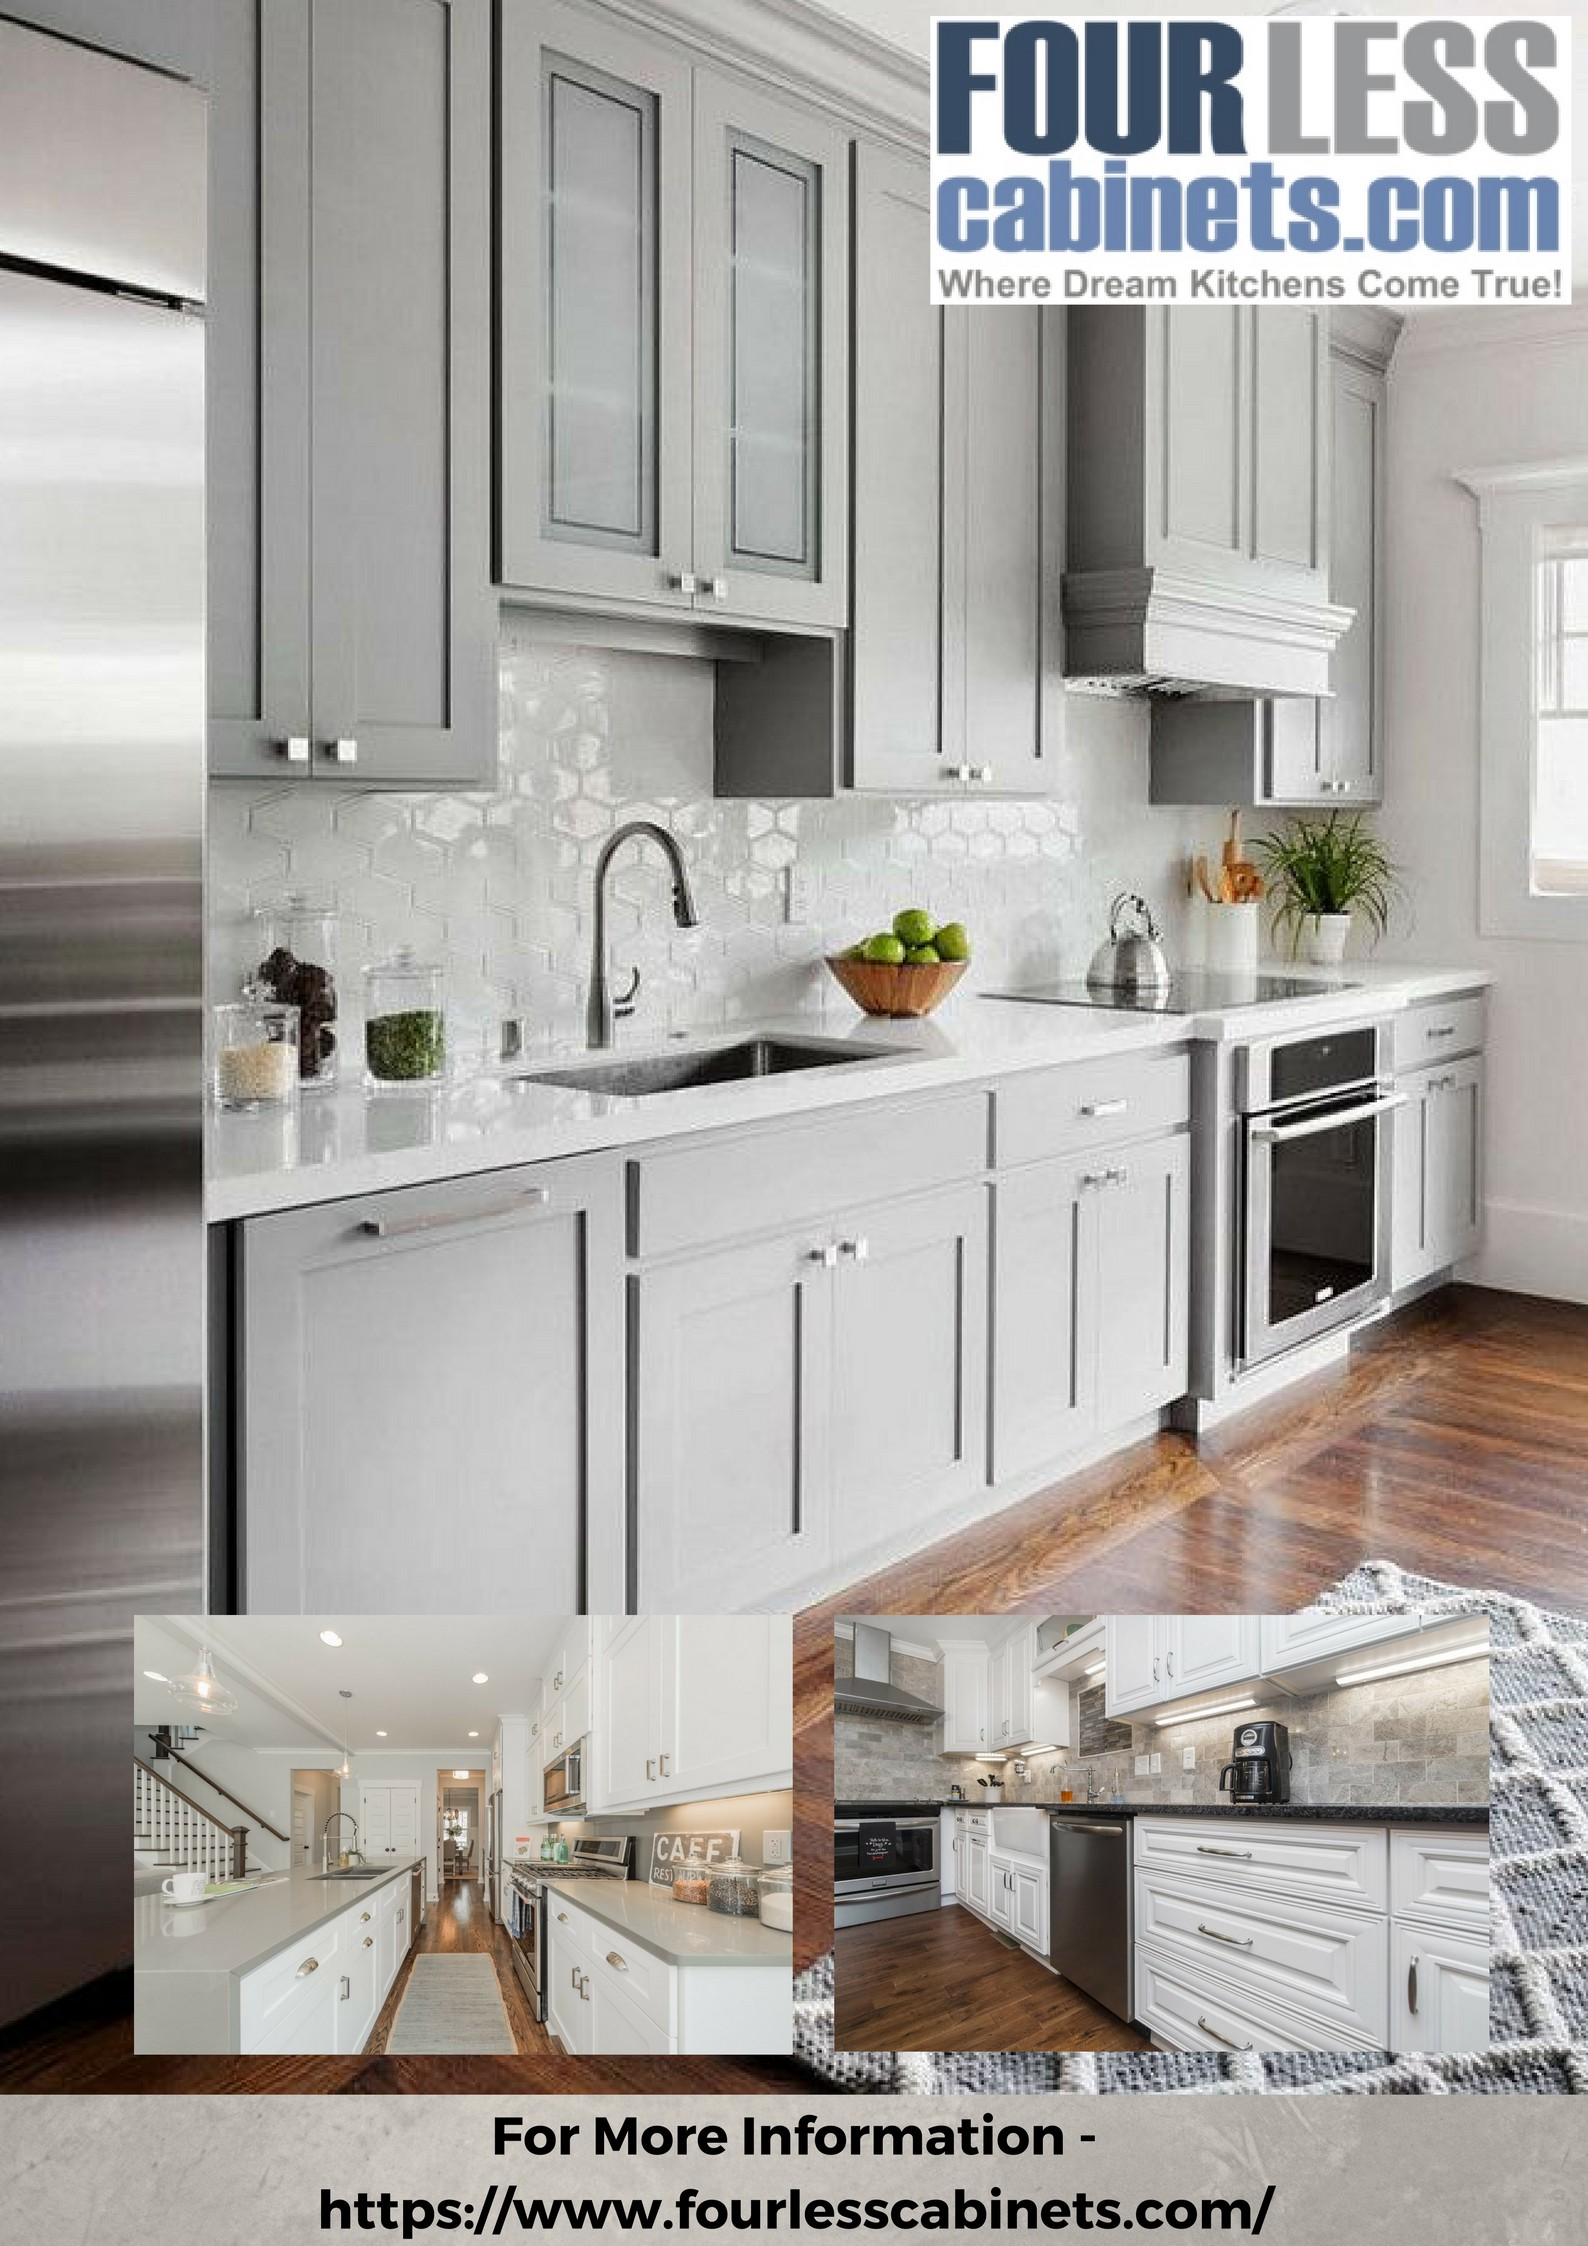 These Shaker Kitchen Cabinets Are Made Of Solid Wood With Panel Full Overlay Doors Modern Come Extension Soft Close Glide